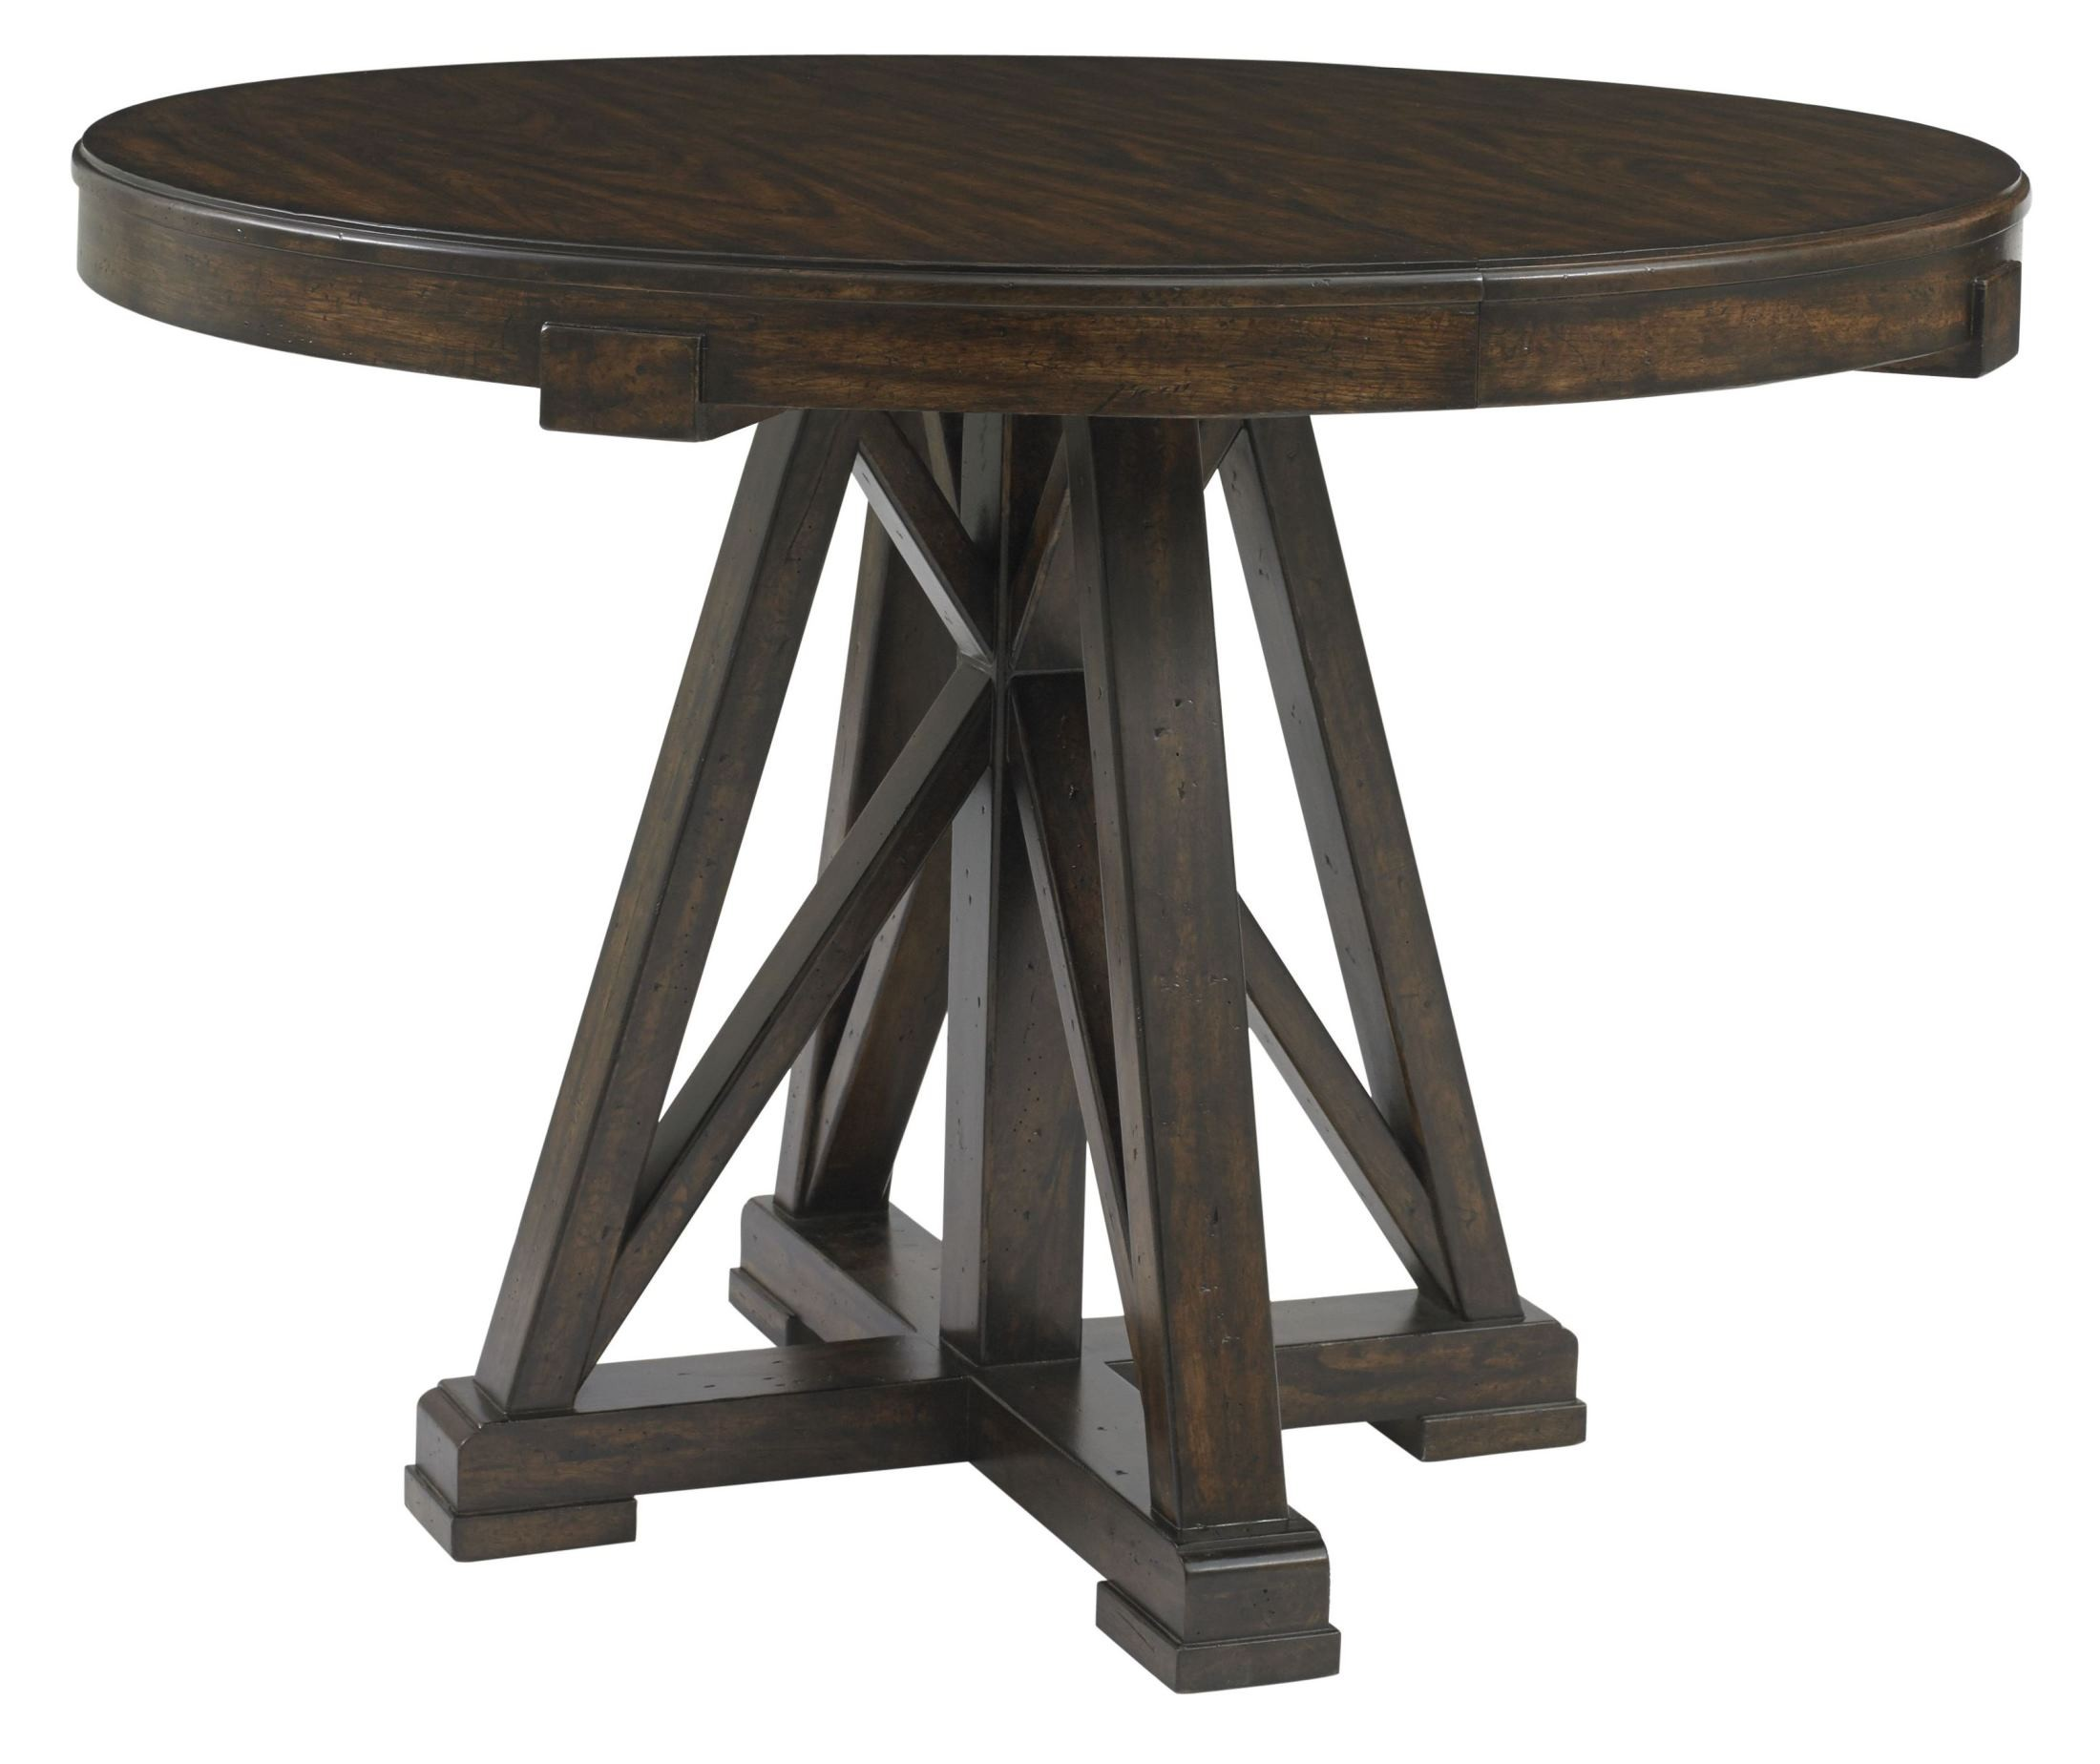 Newel Date Round Pedestal Extendable Dining Table 484 11  : 4841130silo3q2 from colemanfurniture.com size 2200 x 1848 jpeg 270kB